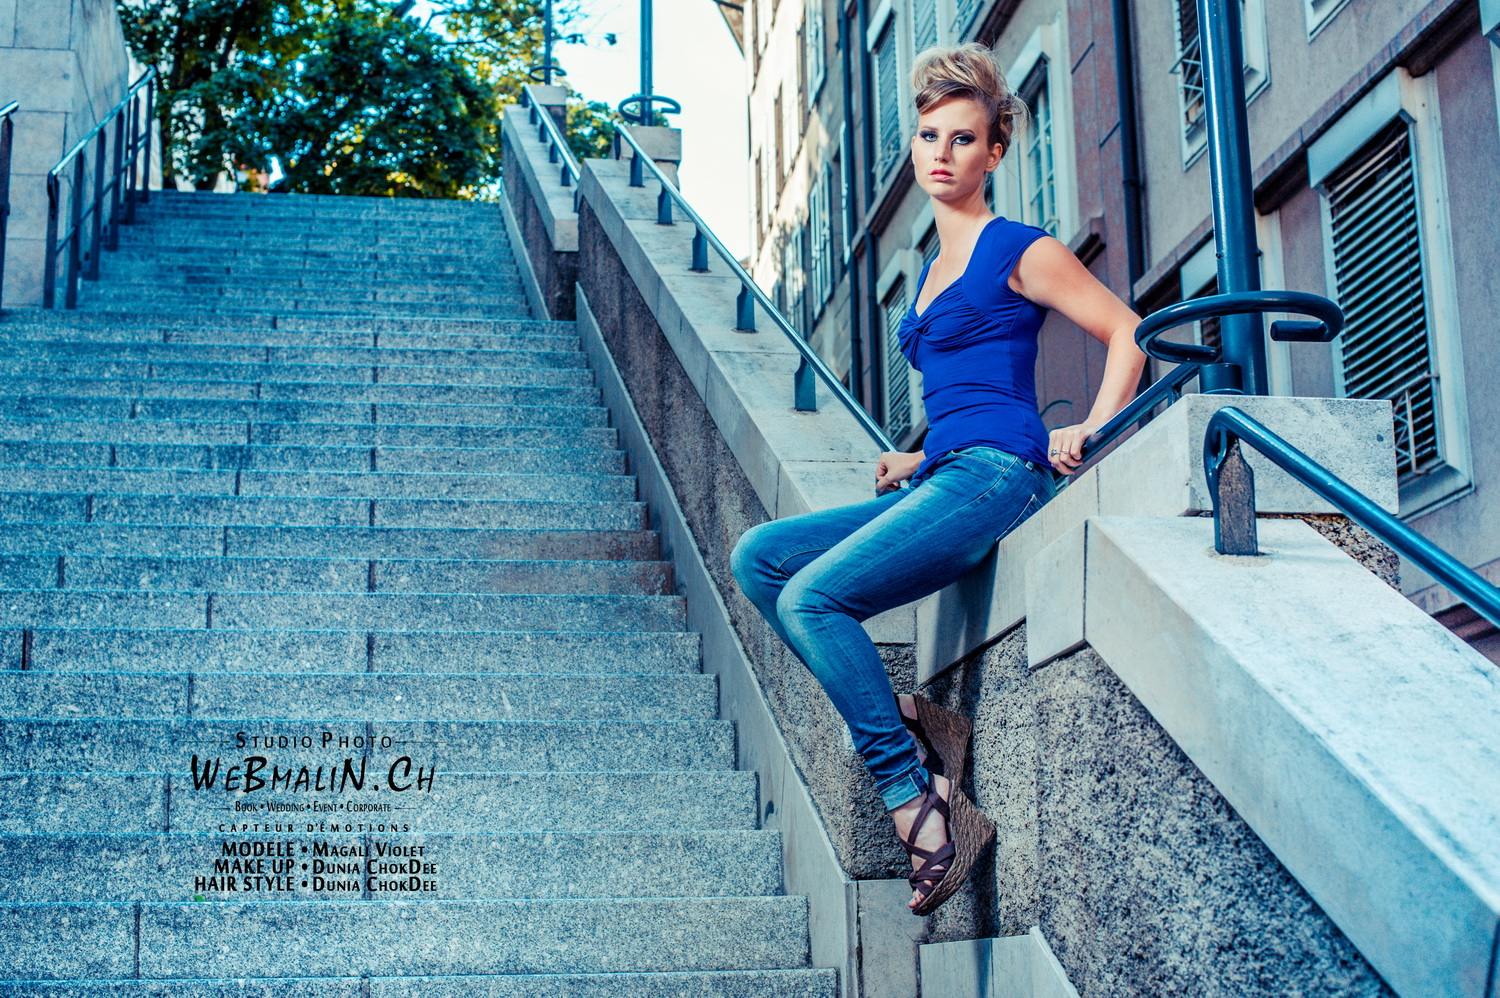 Portfolio - Shoot Fashion - Geneve - Modele Magalie